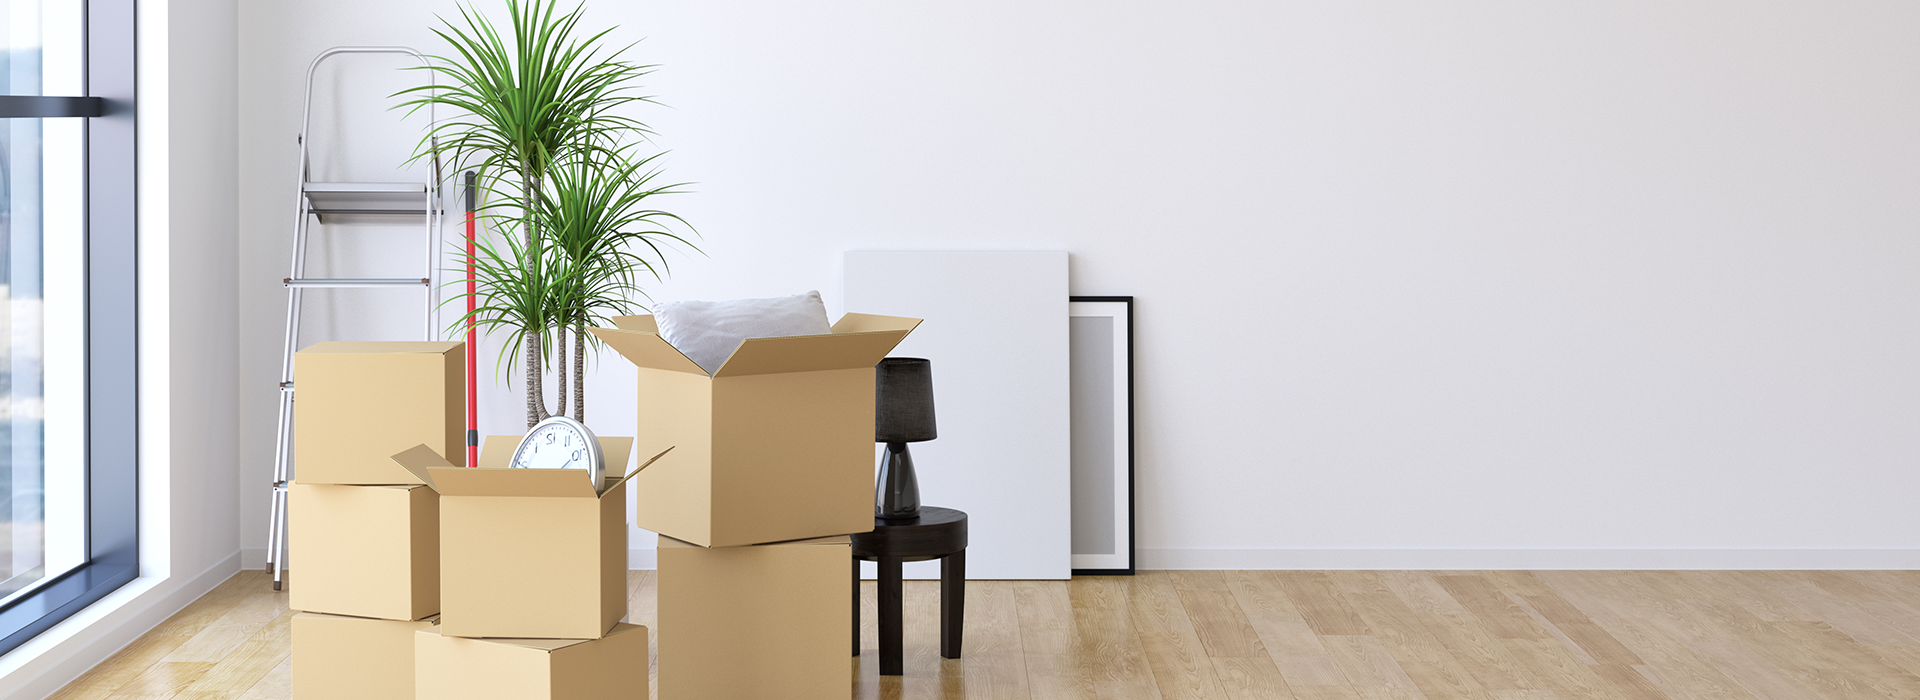 Furniture and Boxes stacked near a large window, they appear in the process of being packed in a white room with wooden floors.